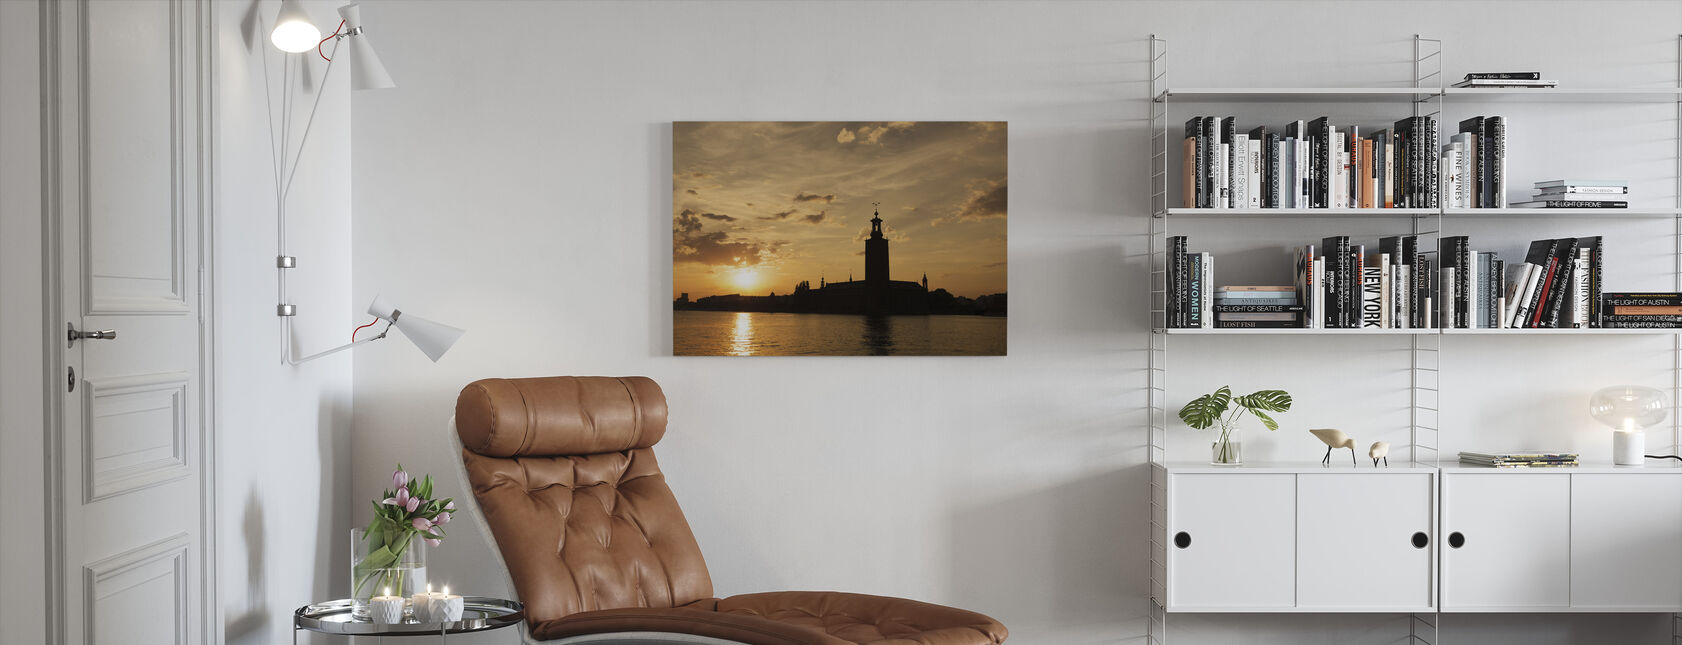 Stockholm City Hall in Silhouette - Canvas print - Living Room